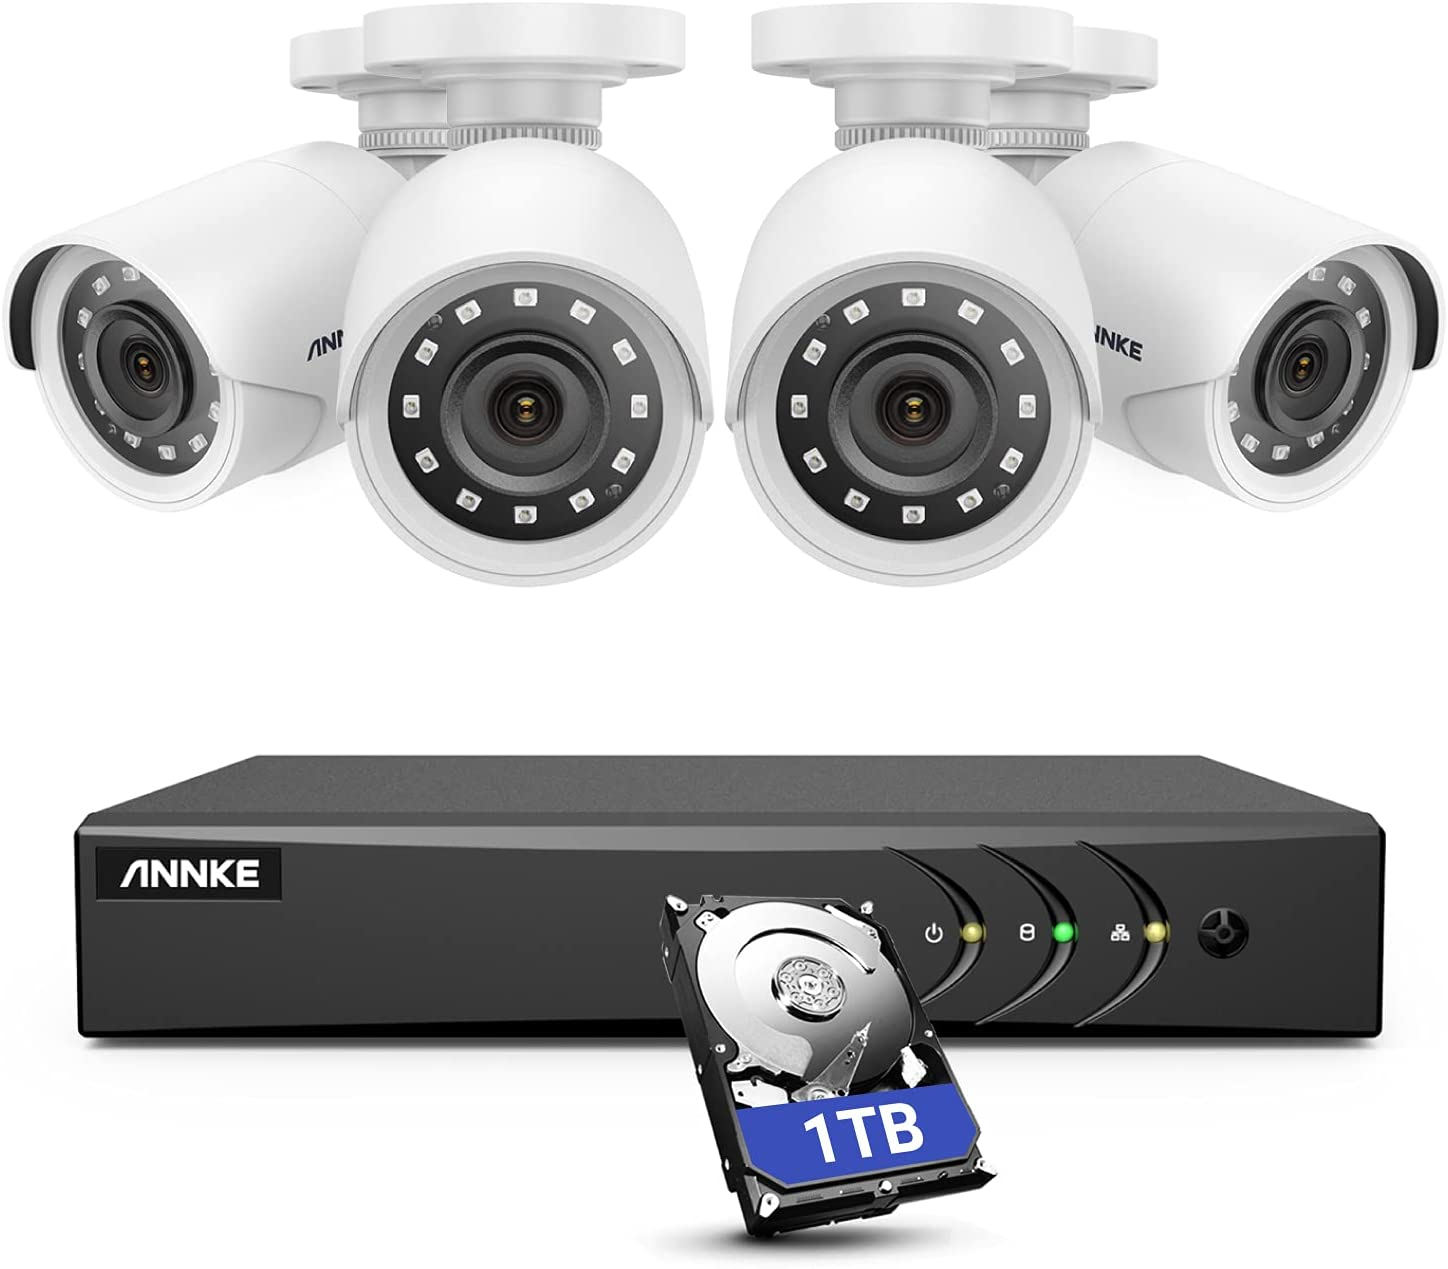 ANNKE 5MP lite Wired Security Camera System, 5-in-1 H.265+ 8CH DVR with 1 TB Hard Drive and (4) 1080p Weatherproof HD-TVI Surveillance Bullet Cameras, 100 ft Night Vision, Instant Email Alert – E200